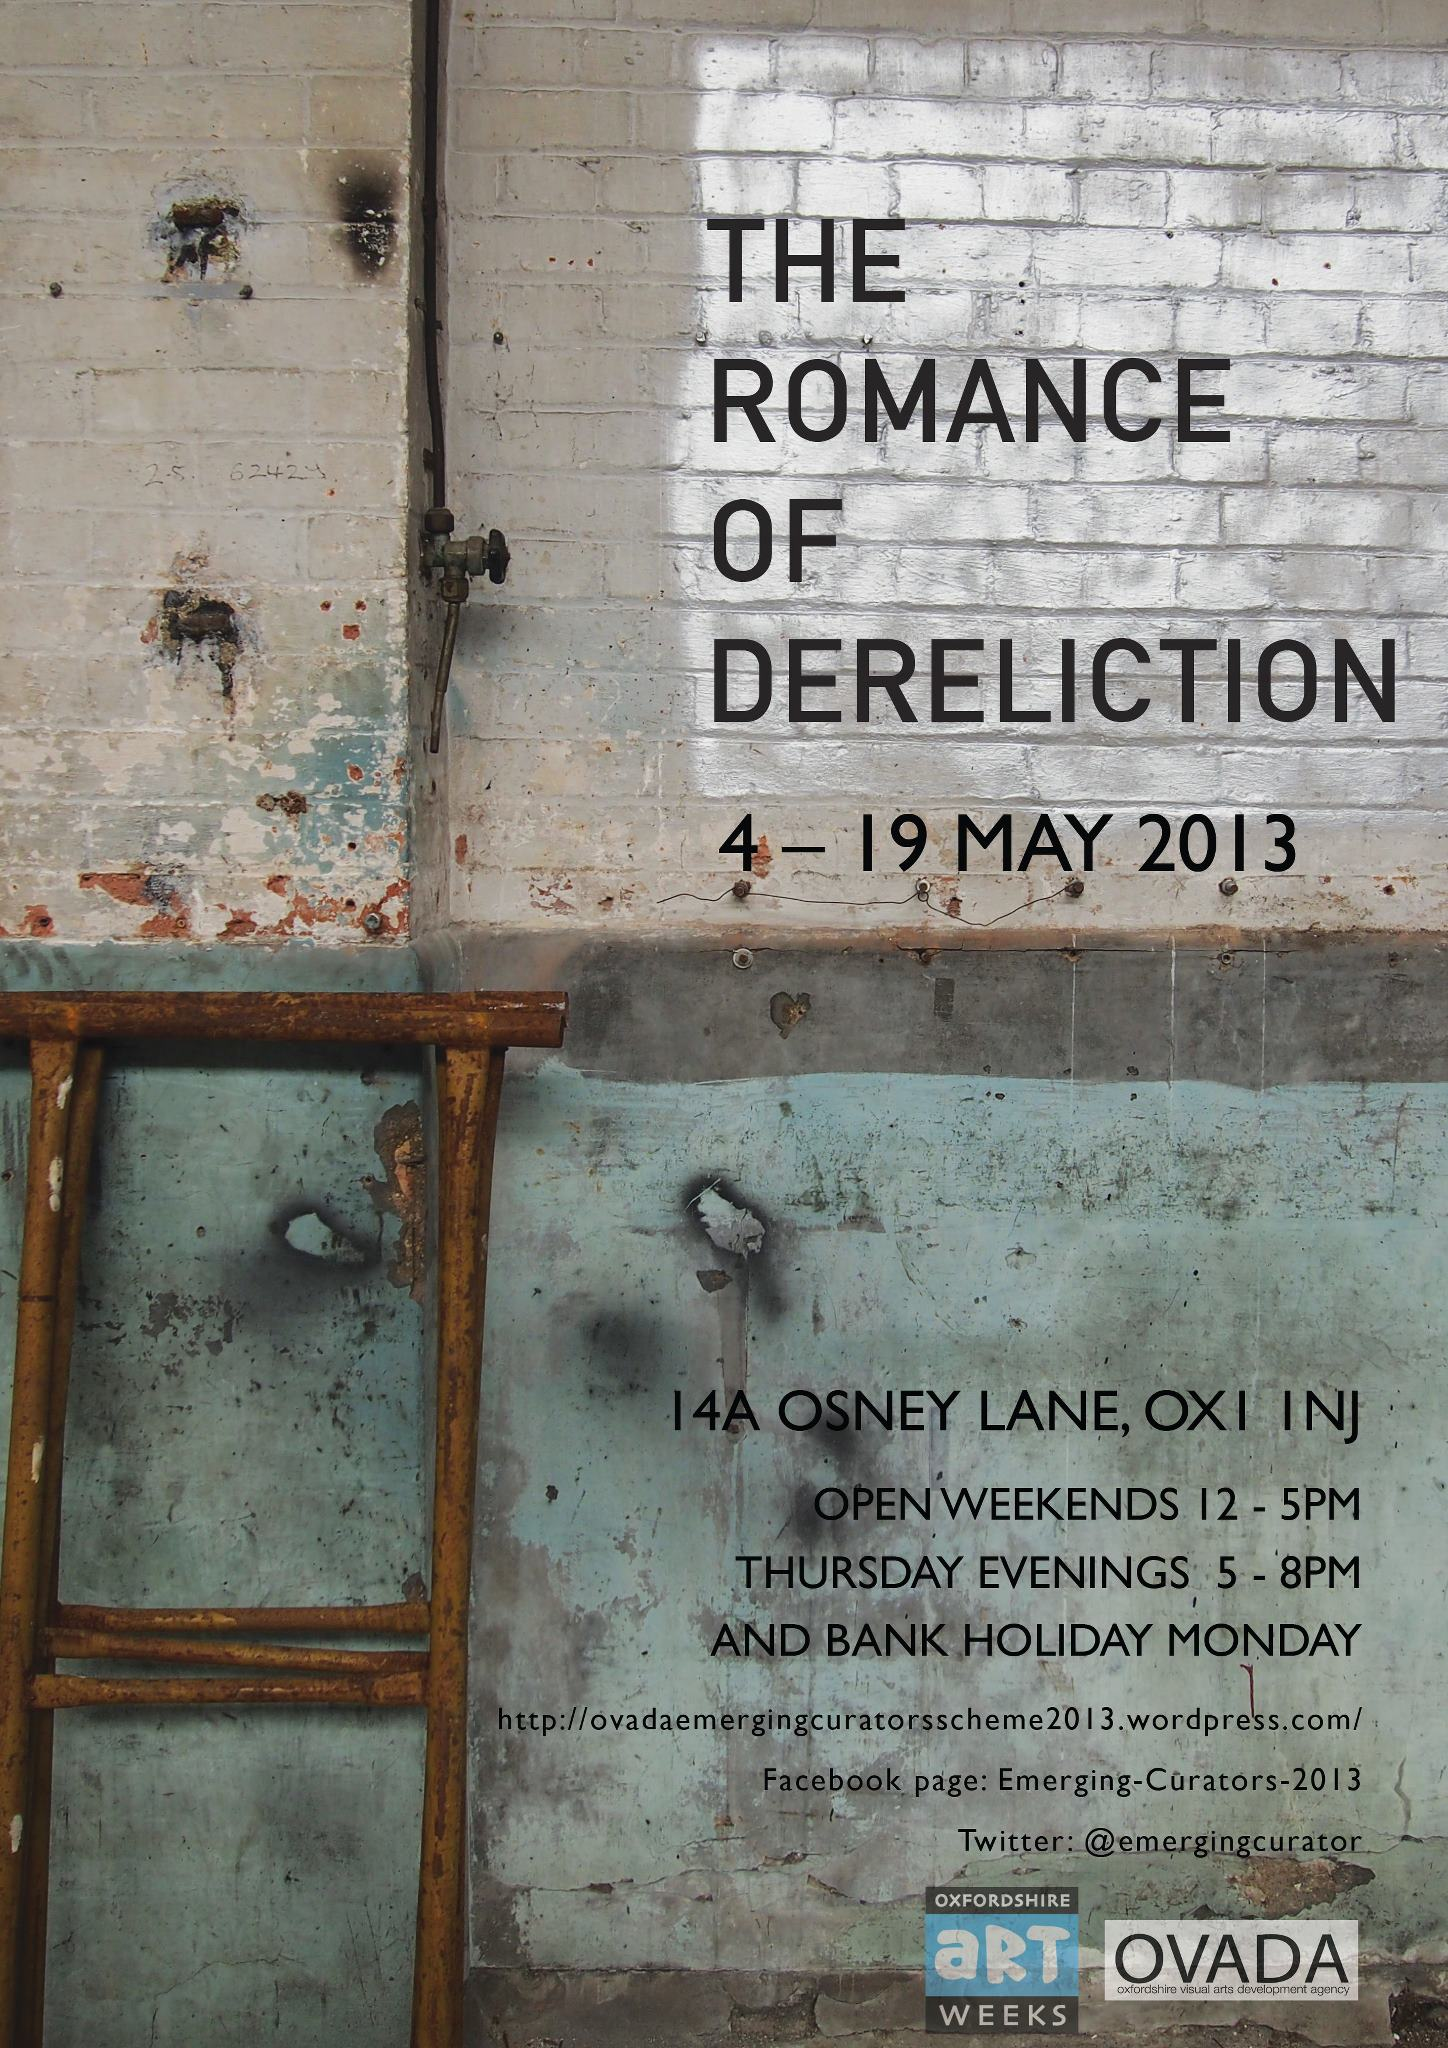 The Romance of Dereliction poster